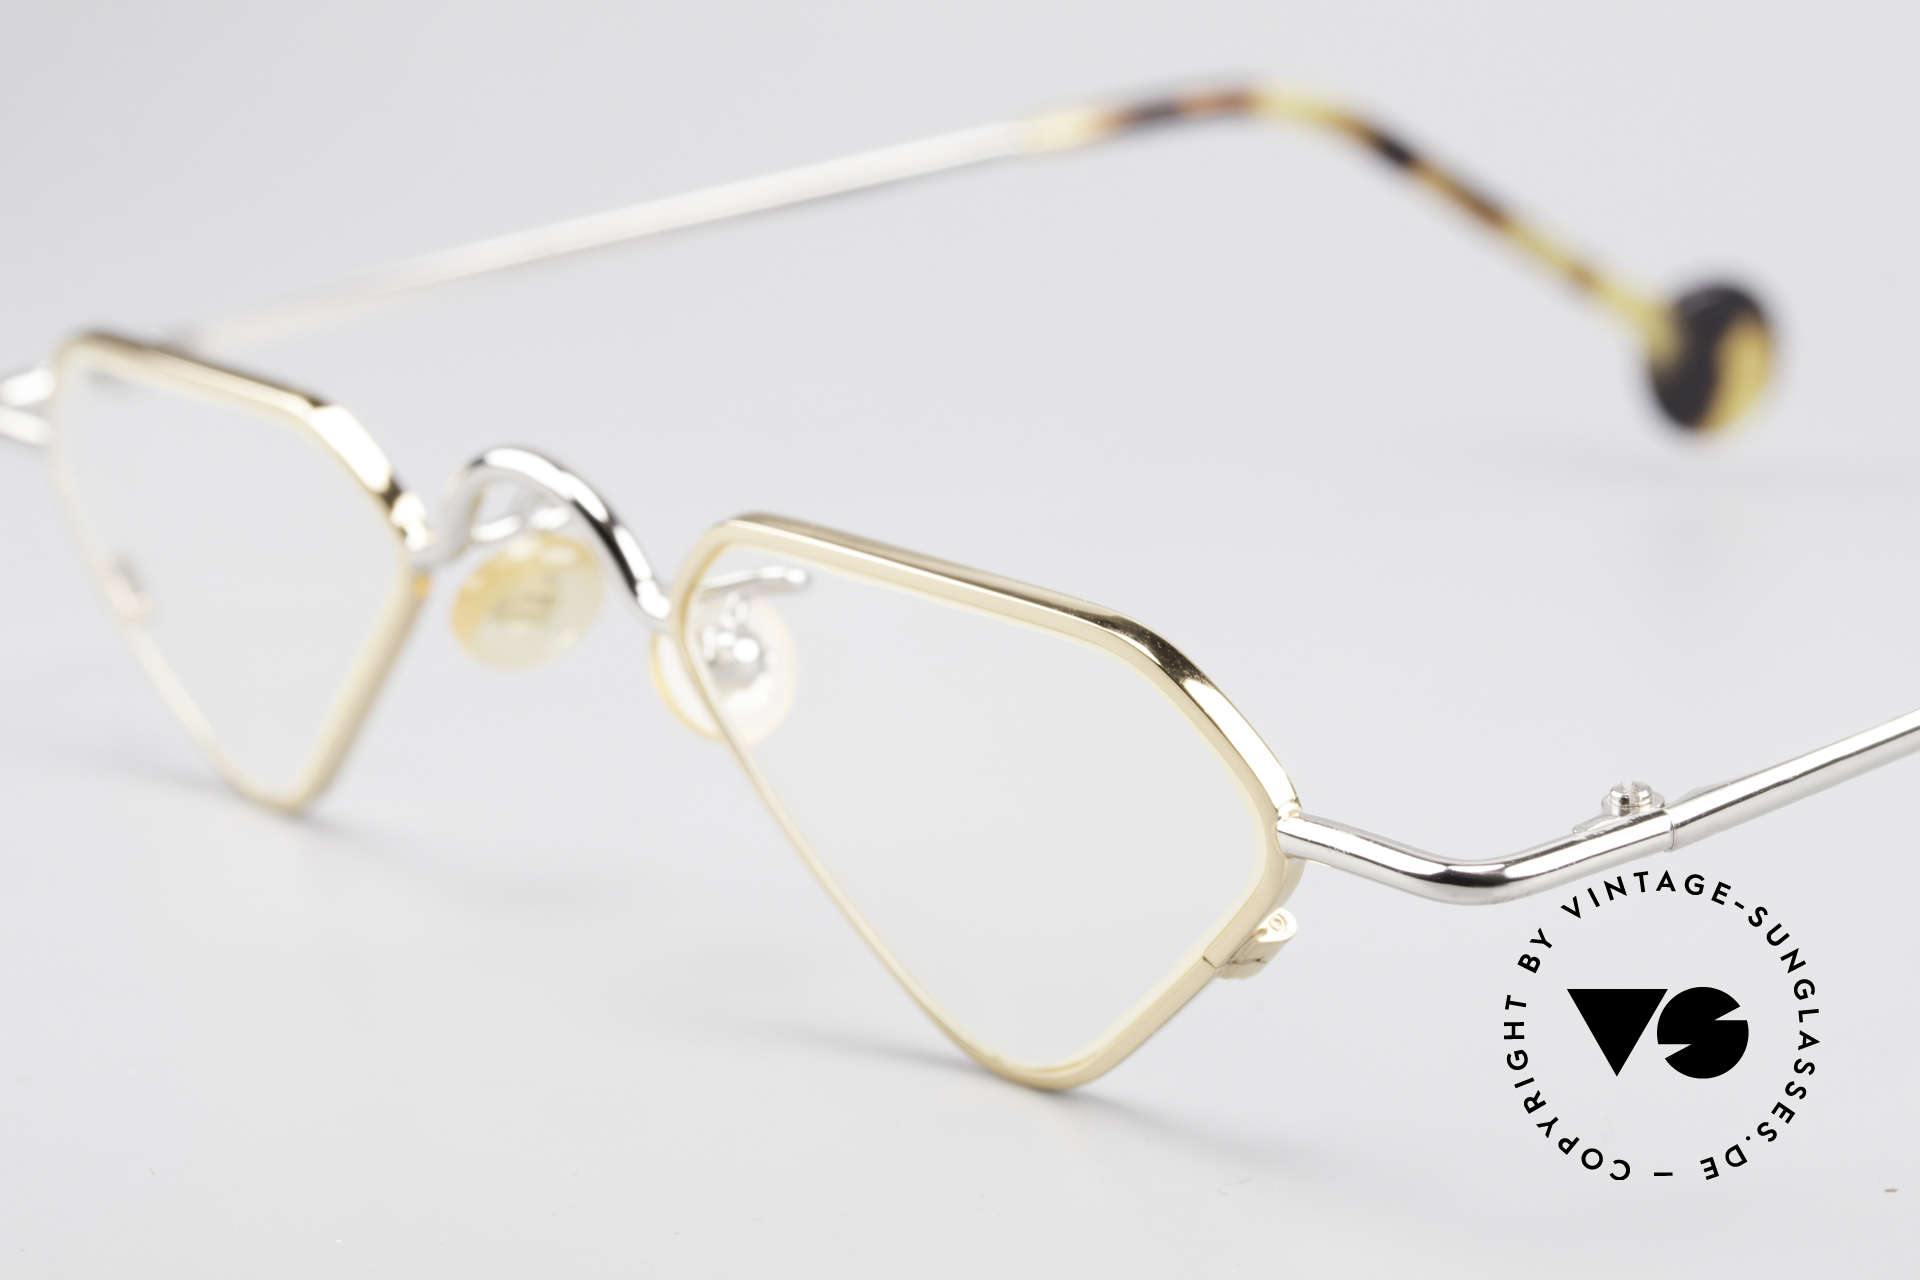 L.A. Eyeworks Millie 451 Reading Glasses Like A Diamond, thus, this terrific model was born in 1995 in Los Angeles, Made for Men and Women